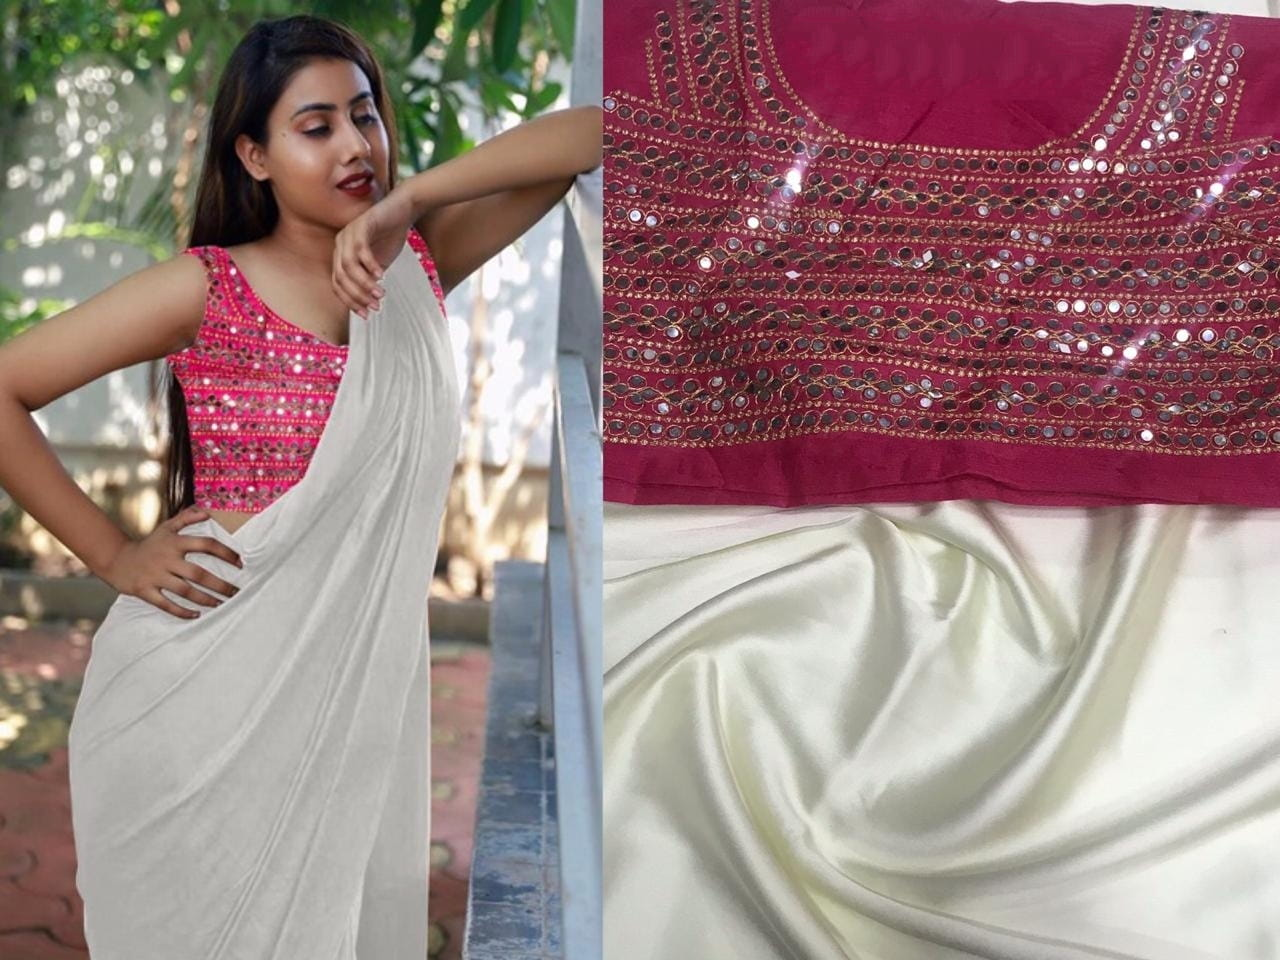 Bewitching White Color Function Wear Japan Satin Plain Saree Plastic Stone Embroidered Mirror Work Blouse for Women